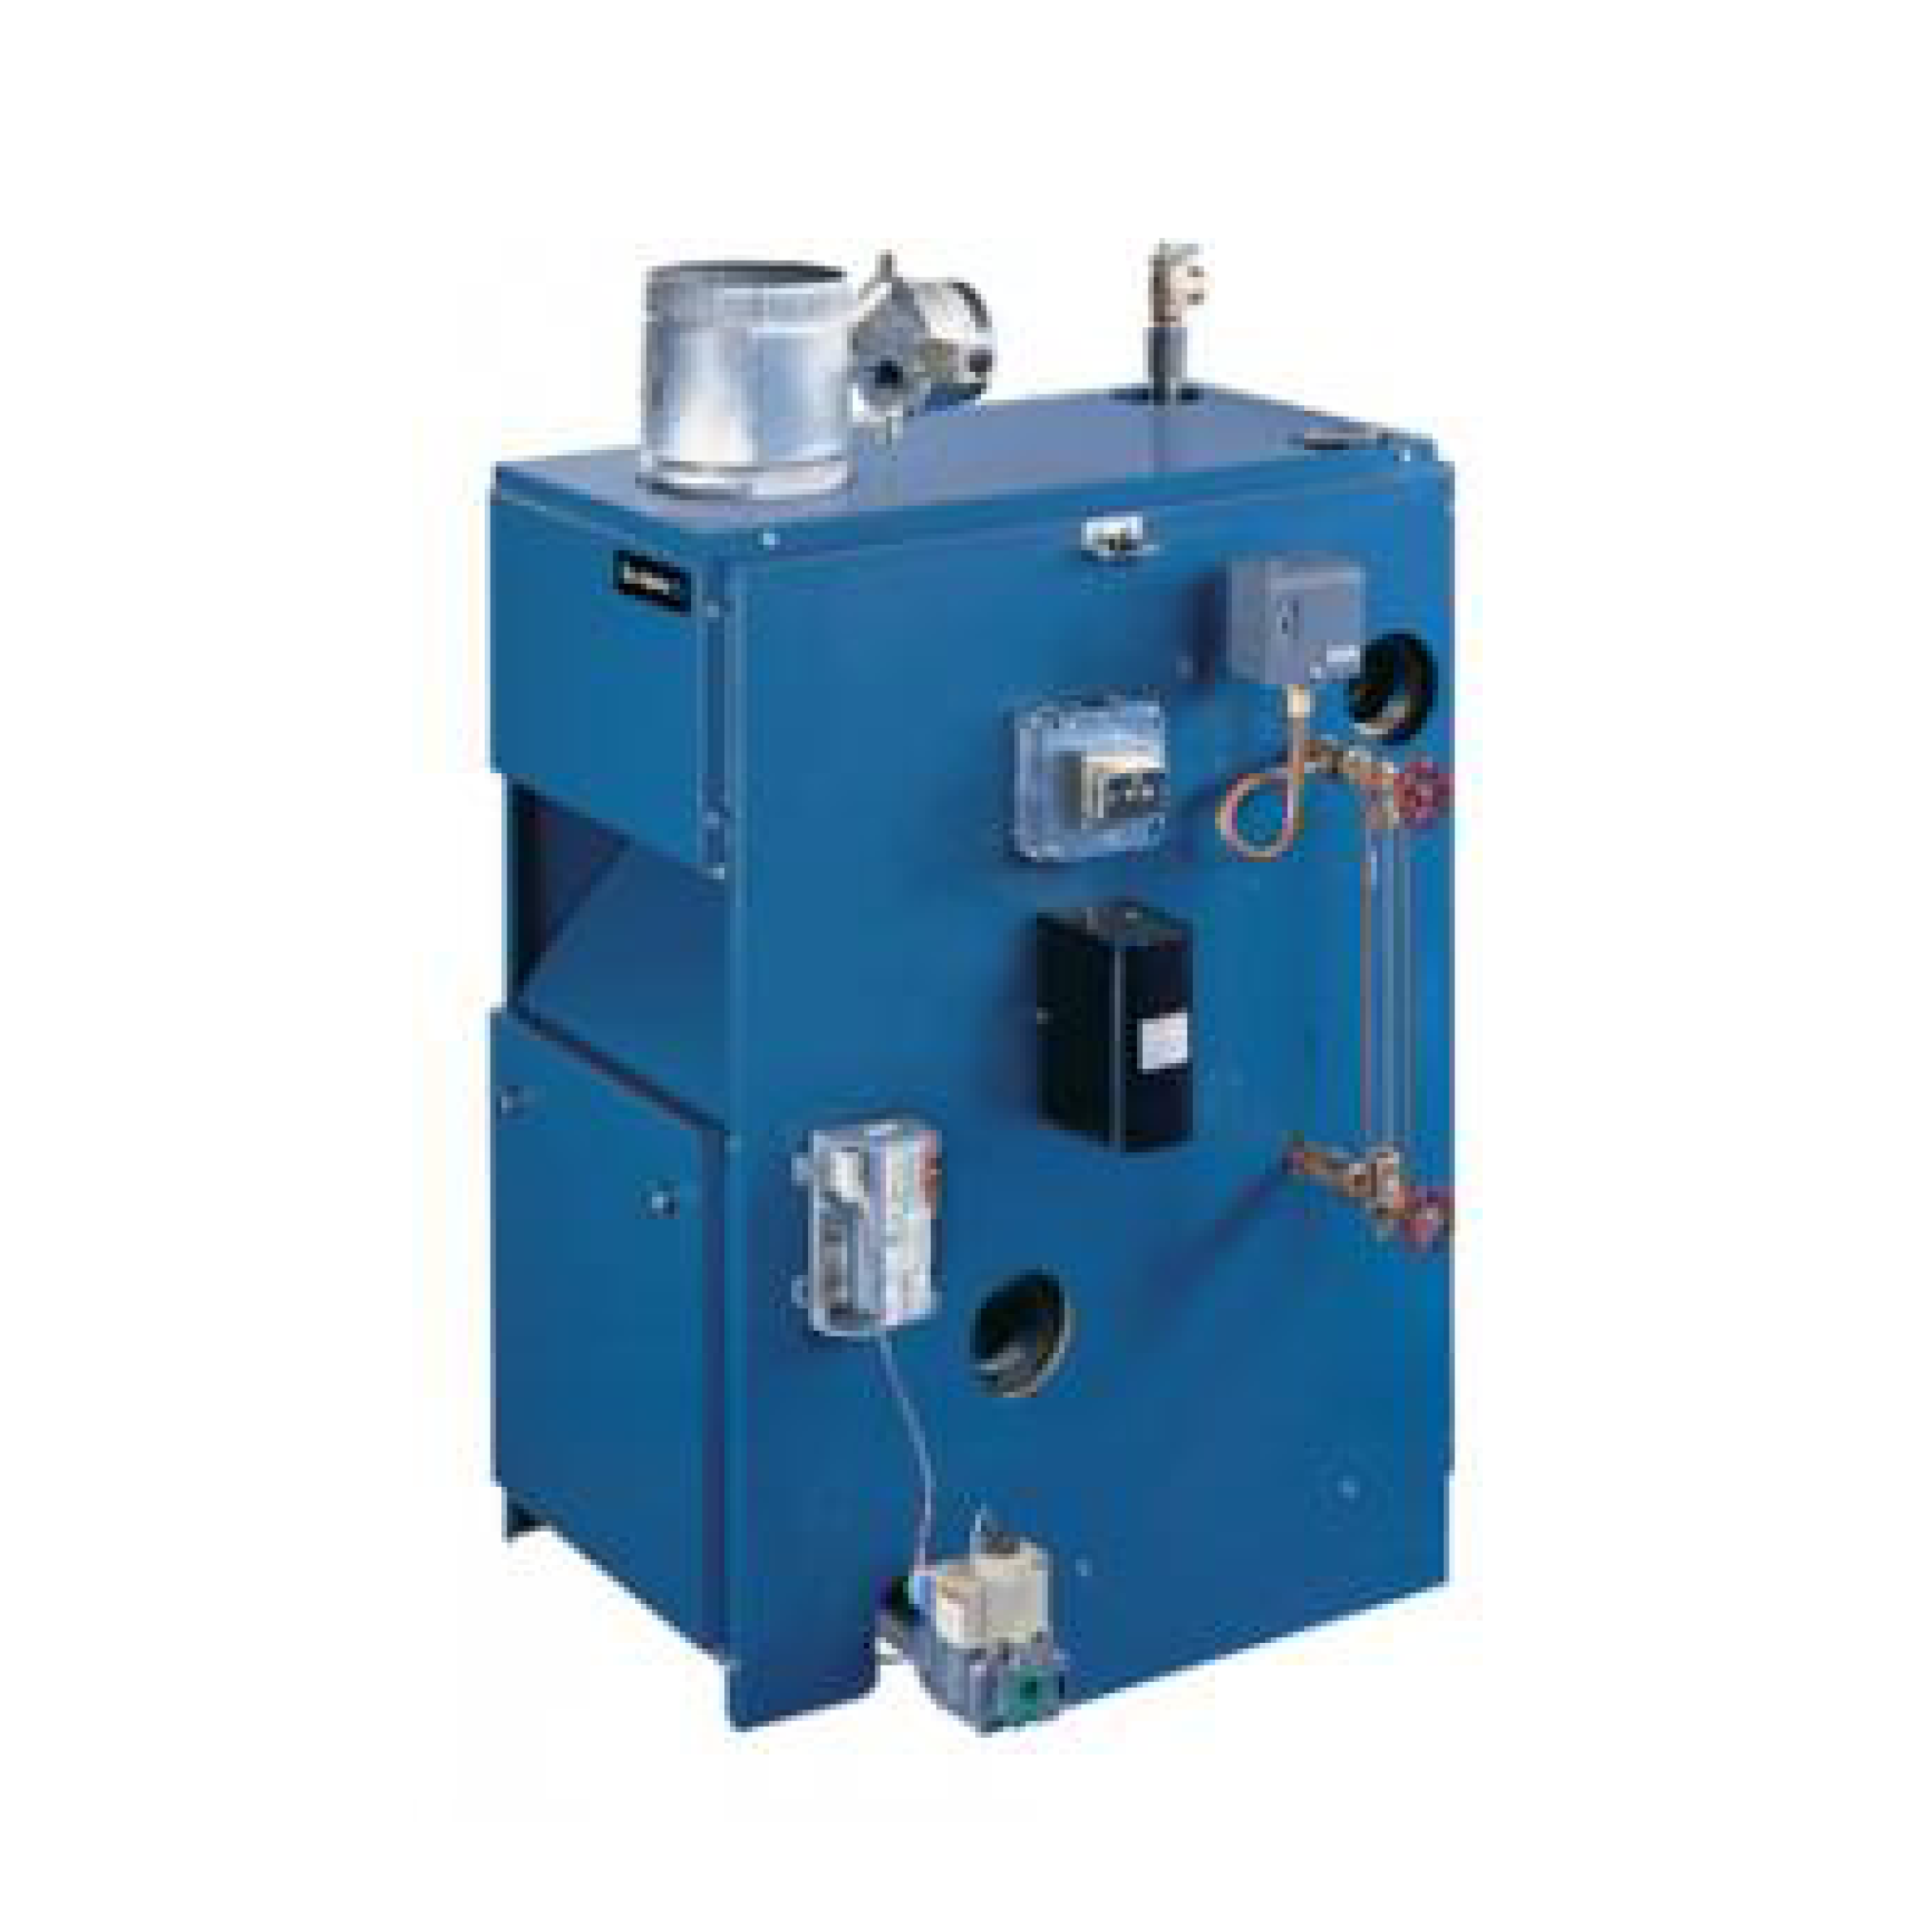 Dunkirk PSB Series Gas Boiler | 2-J Supply